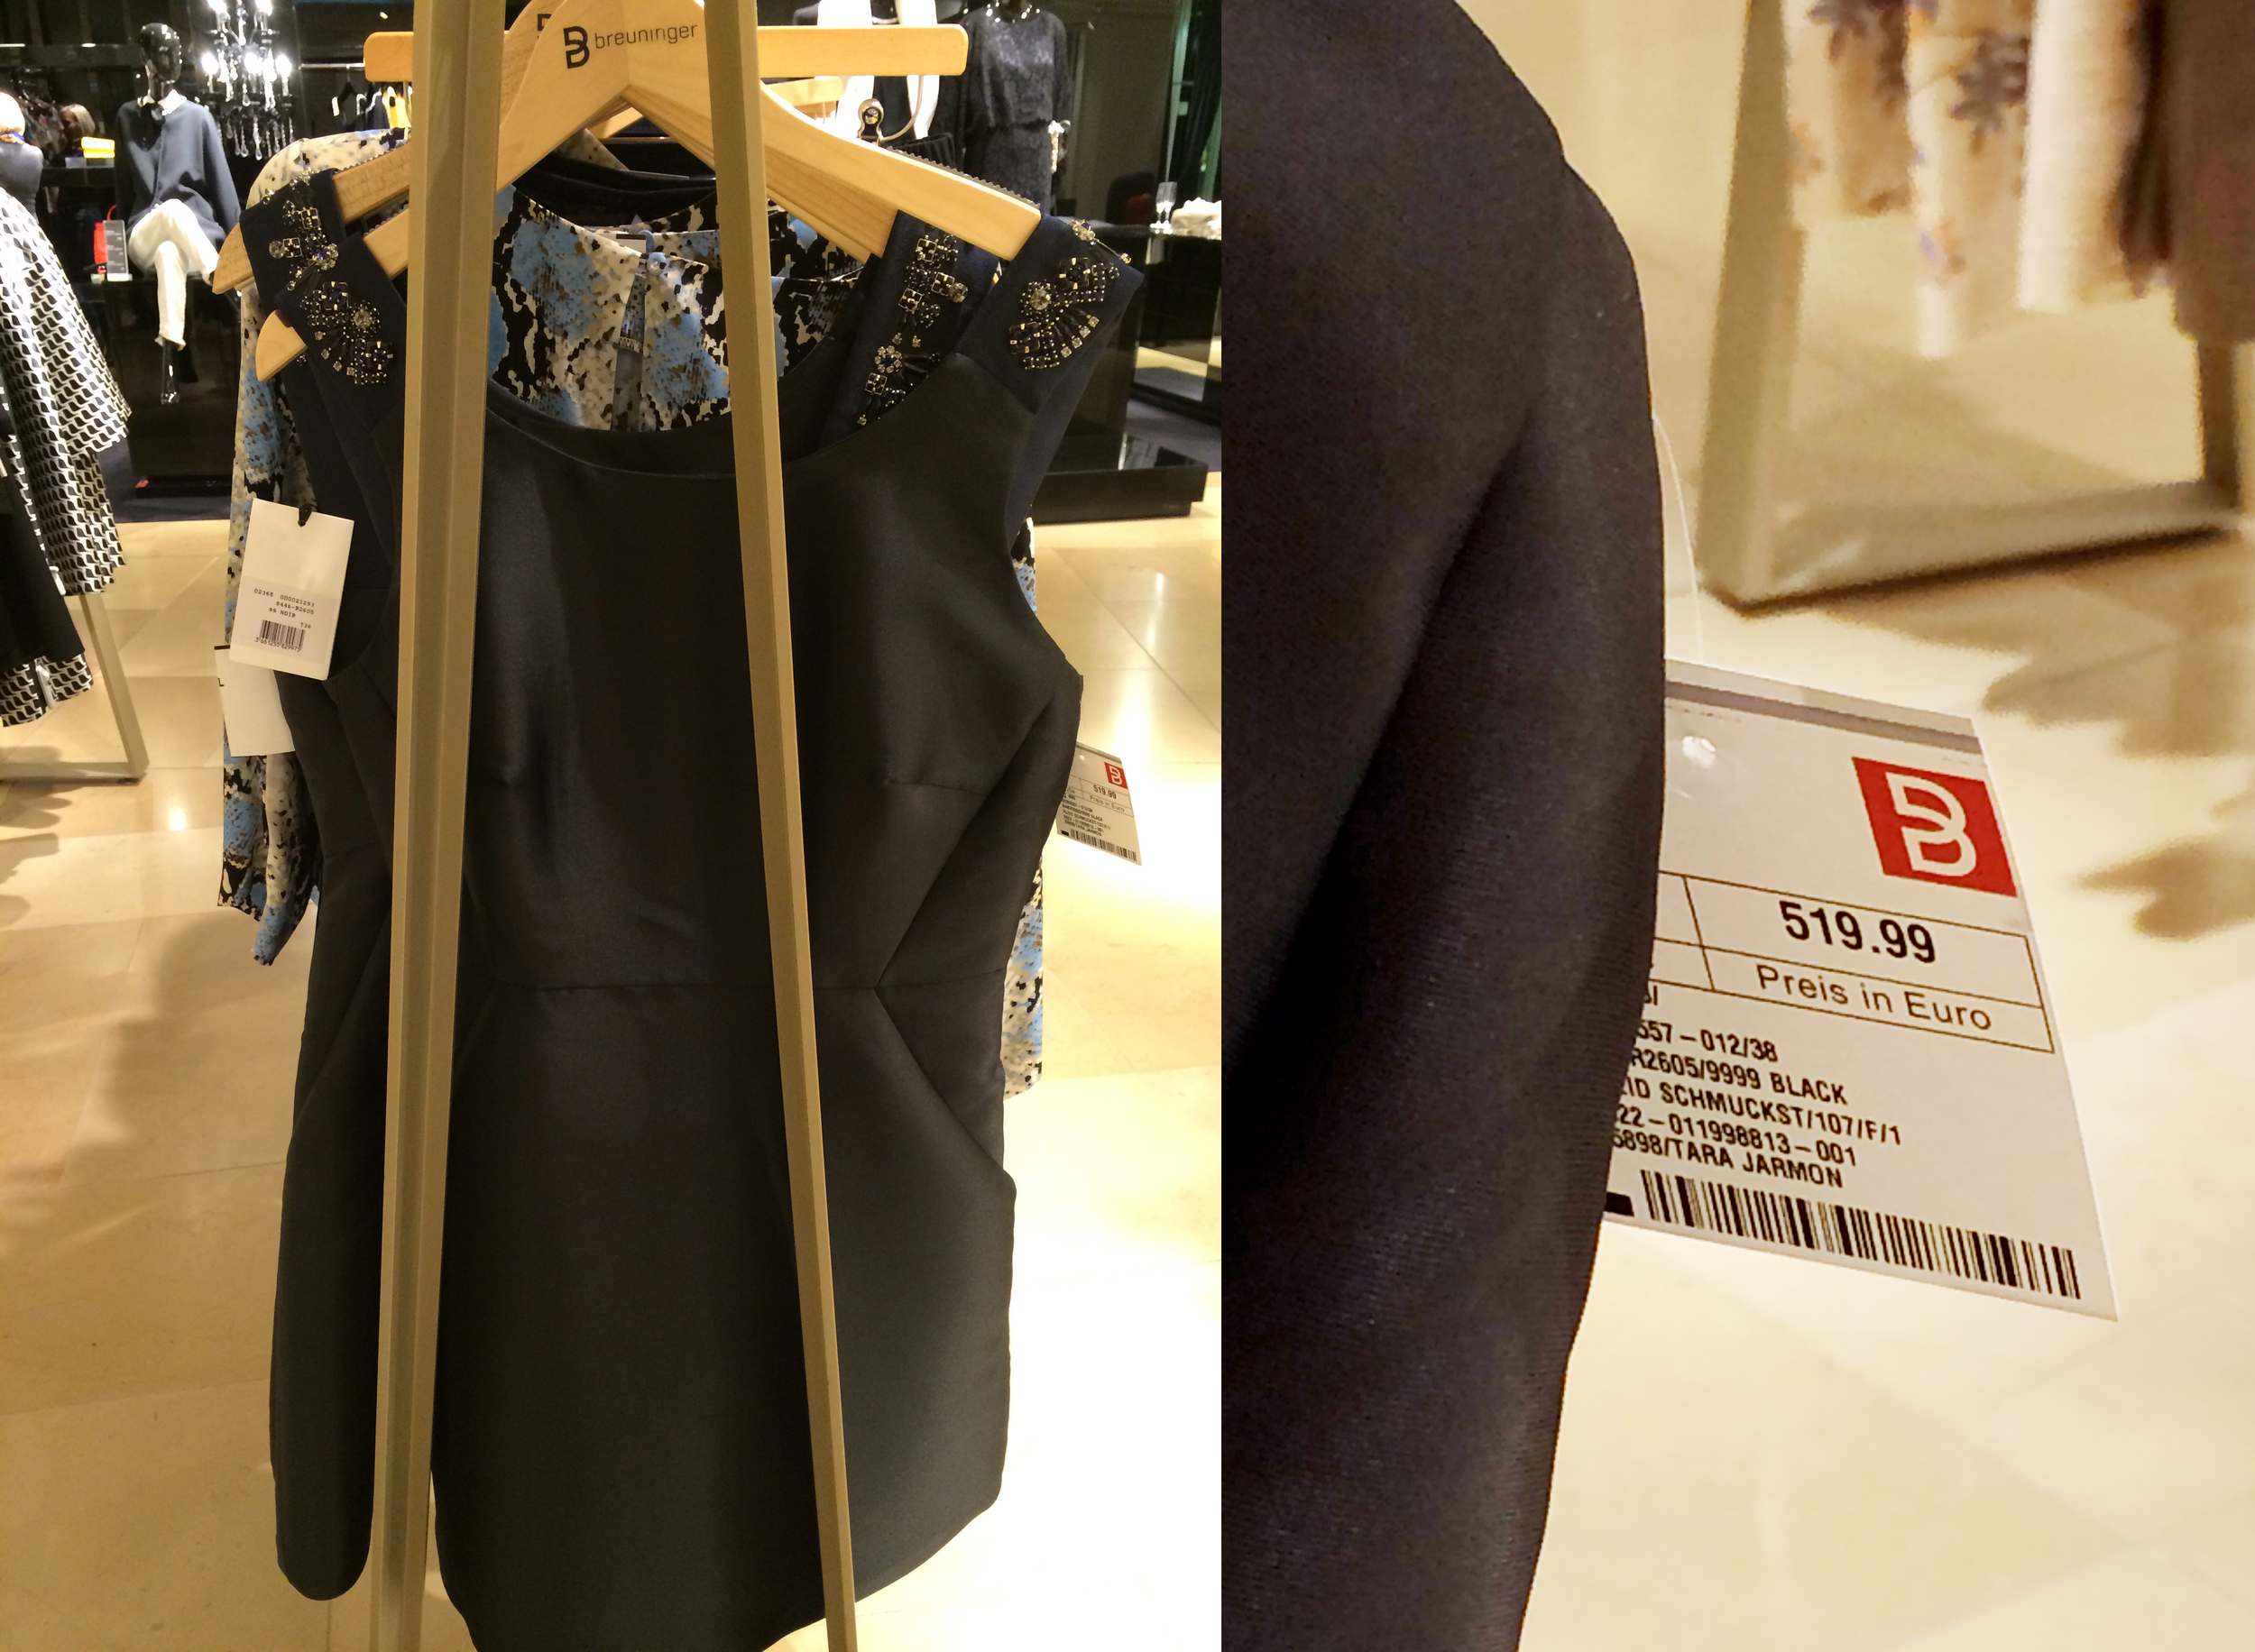 Inside Dolce & Gabbana: this dress looks kind of nice... just not €519.99 nice :)